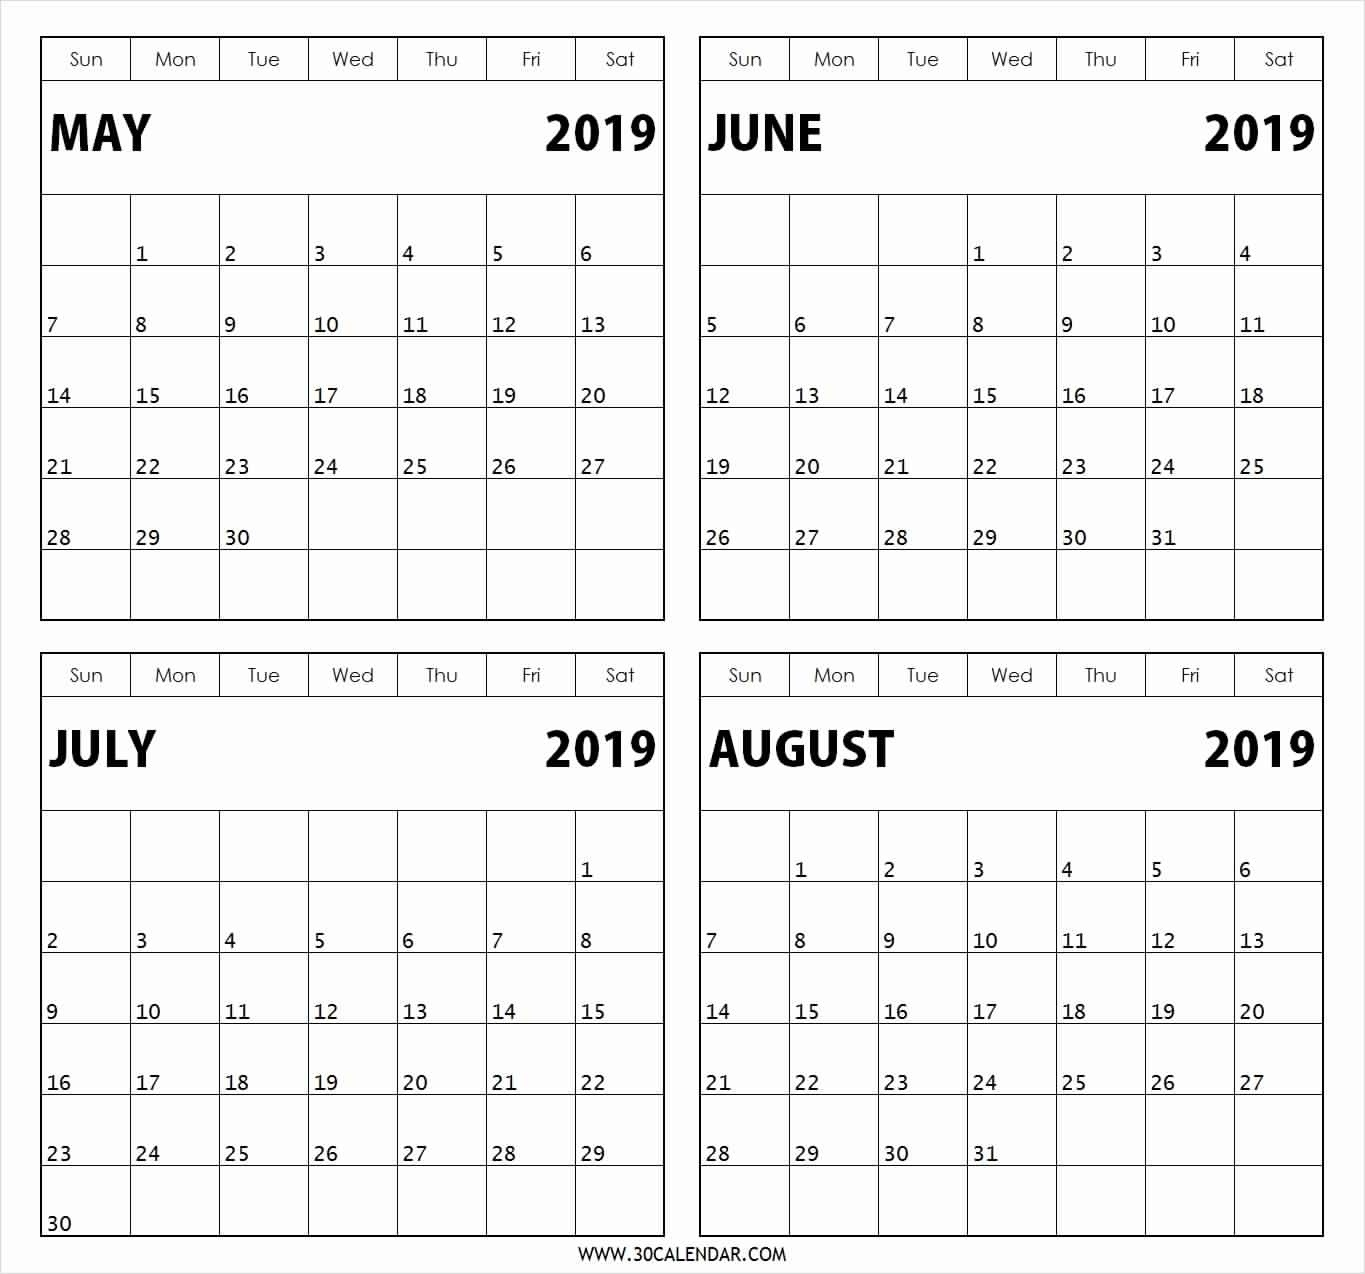 Free Printable Calendar 3 Months Per Page 2019 • Printable pertaining to Printable Calendar 3 Months Per Page